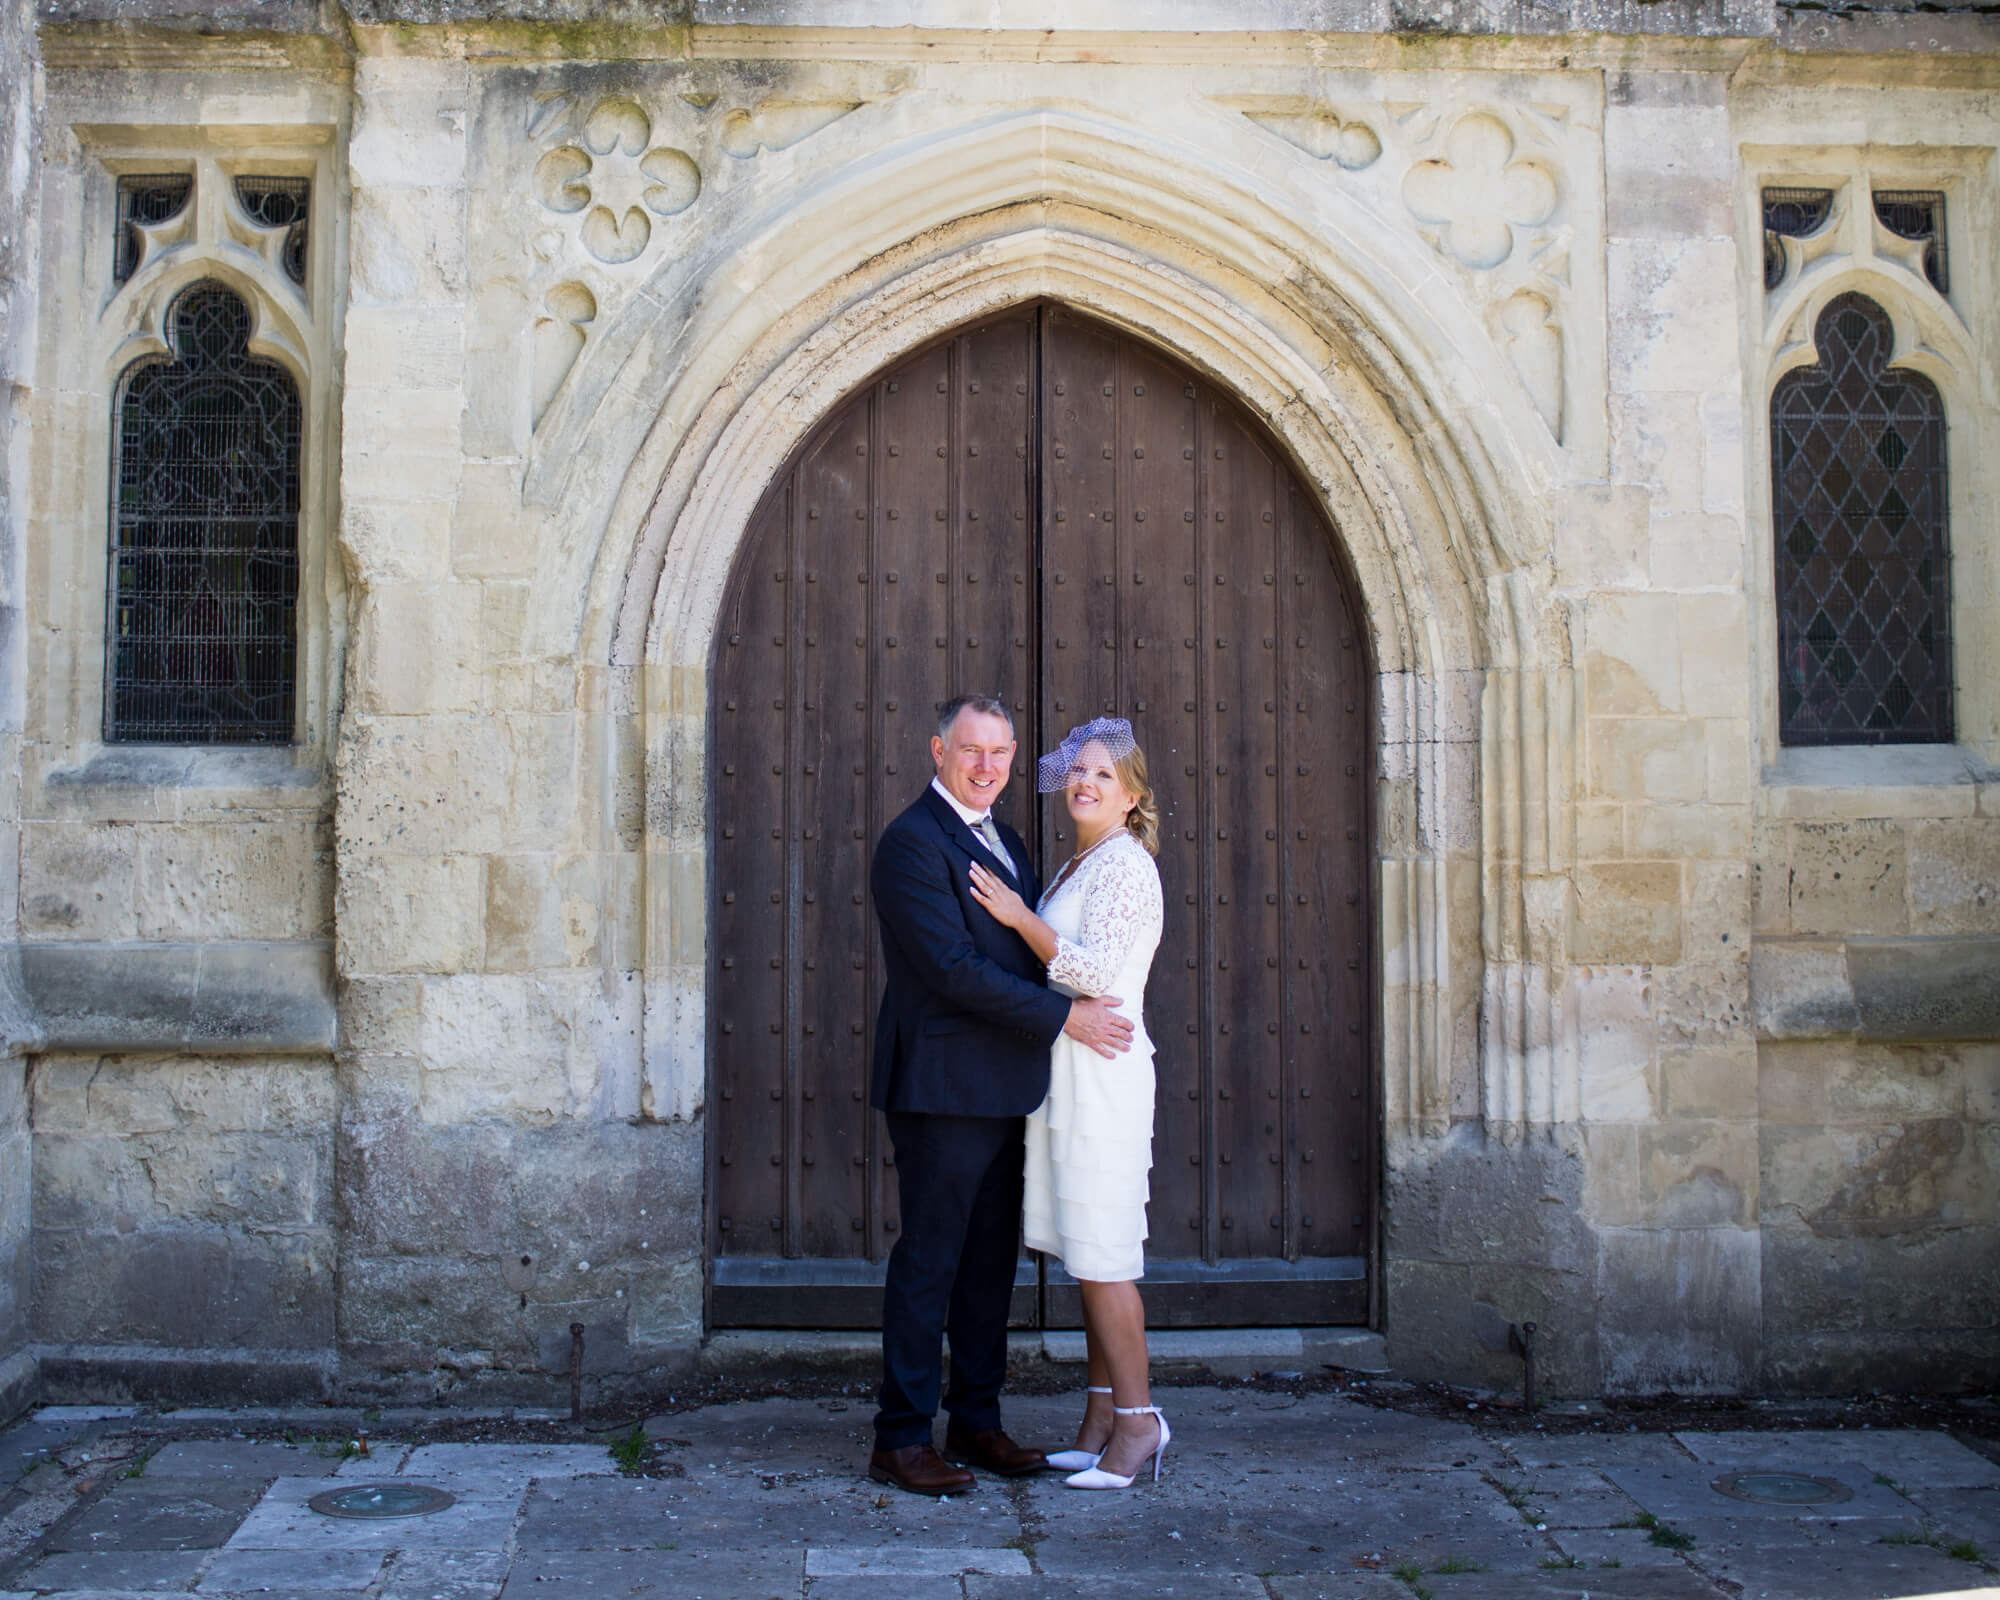 bride and groom, Wedding photography at Salisbury registry office, Wiltshire